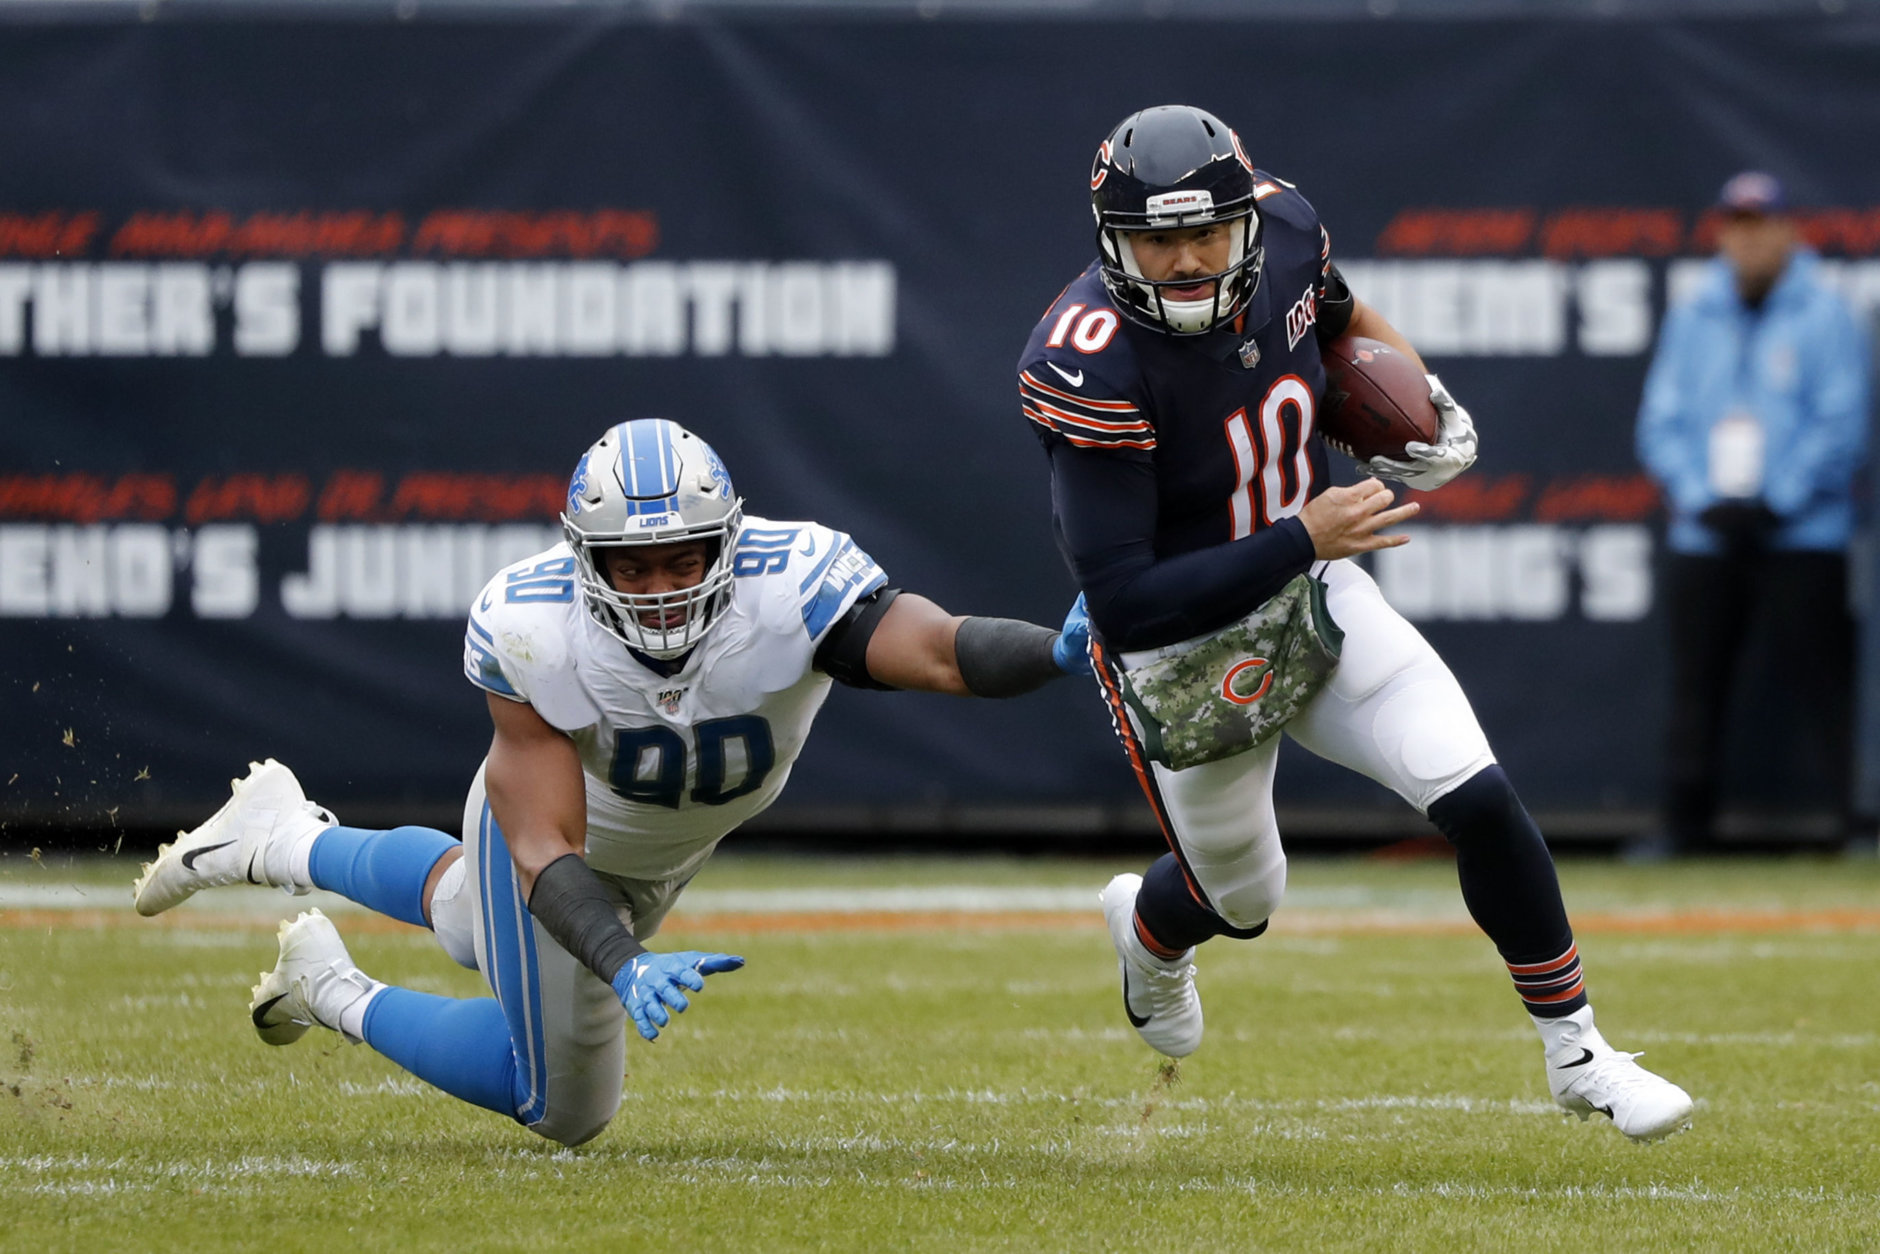 """<p><b><i>Lions 13</i></b><br /> <b><i>Bears 20</i></b></p> <p>Maybe it was <a href=""""https://www.chicagotribune.com/sports/bears/ct-cb-chicago-bears-matt-nagy-defense-zach-ertz-20191104-2axoxwq7znci3lmysuaqm4zoe4-story.html"""" target=""""_blank"""" rel=""""noopener"""">Matt Nagy&#8217;s positivity</a>, maybe it was <a href=""""https://www.si.com/nfl/2019/11/07/mitchell-trubisky-bears-halas-hall-televisions"""" target=""""_blank"""" rel=""""noopener"""">Mitchell Trubisky turning off the TVs, </a>but it was probably more about <a href=""""https://profootballtalk.nbcsports.com/2019/11/05/stafford-on-pace-to-lead-nfl-in-passing-yards-with-help-from-lions-bad-defense/"""" target=""""_blank"""" rel=""""noopener"""">the red hot Matthew Stafford</a> being sidelined for the first time since 2010 and Detroit&#8217;s defense continuing to disappoint.</p>"""